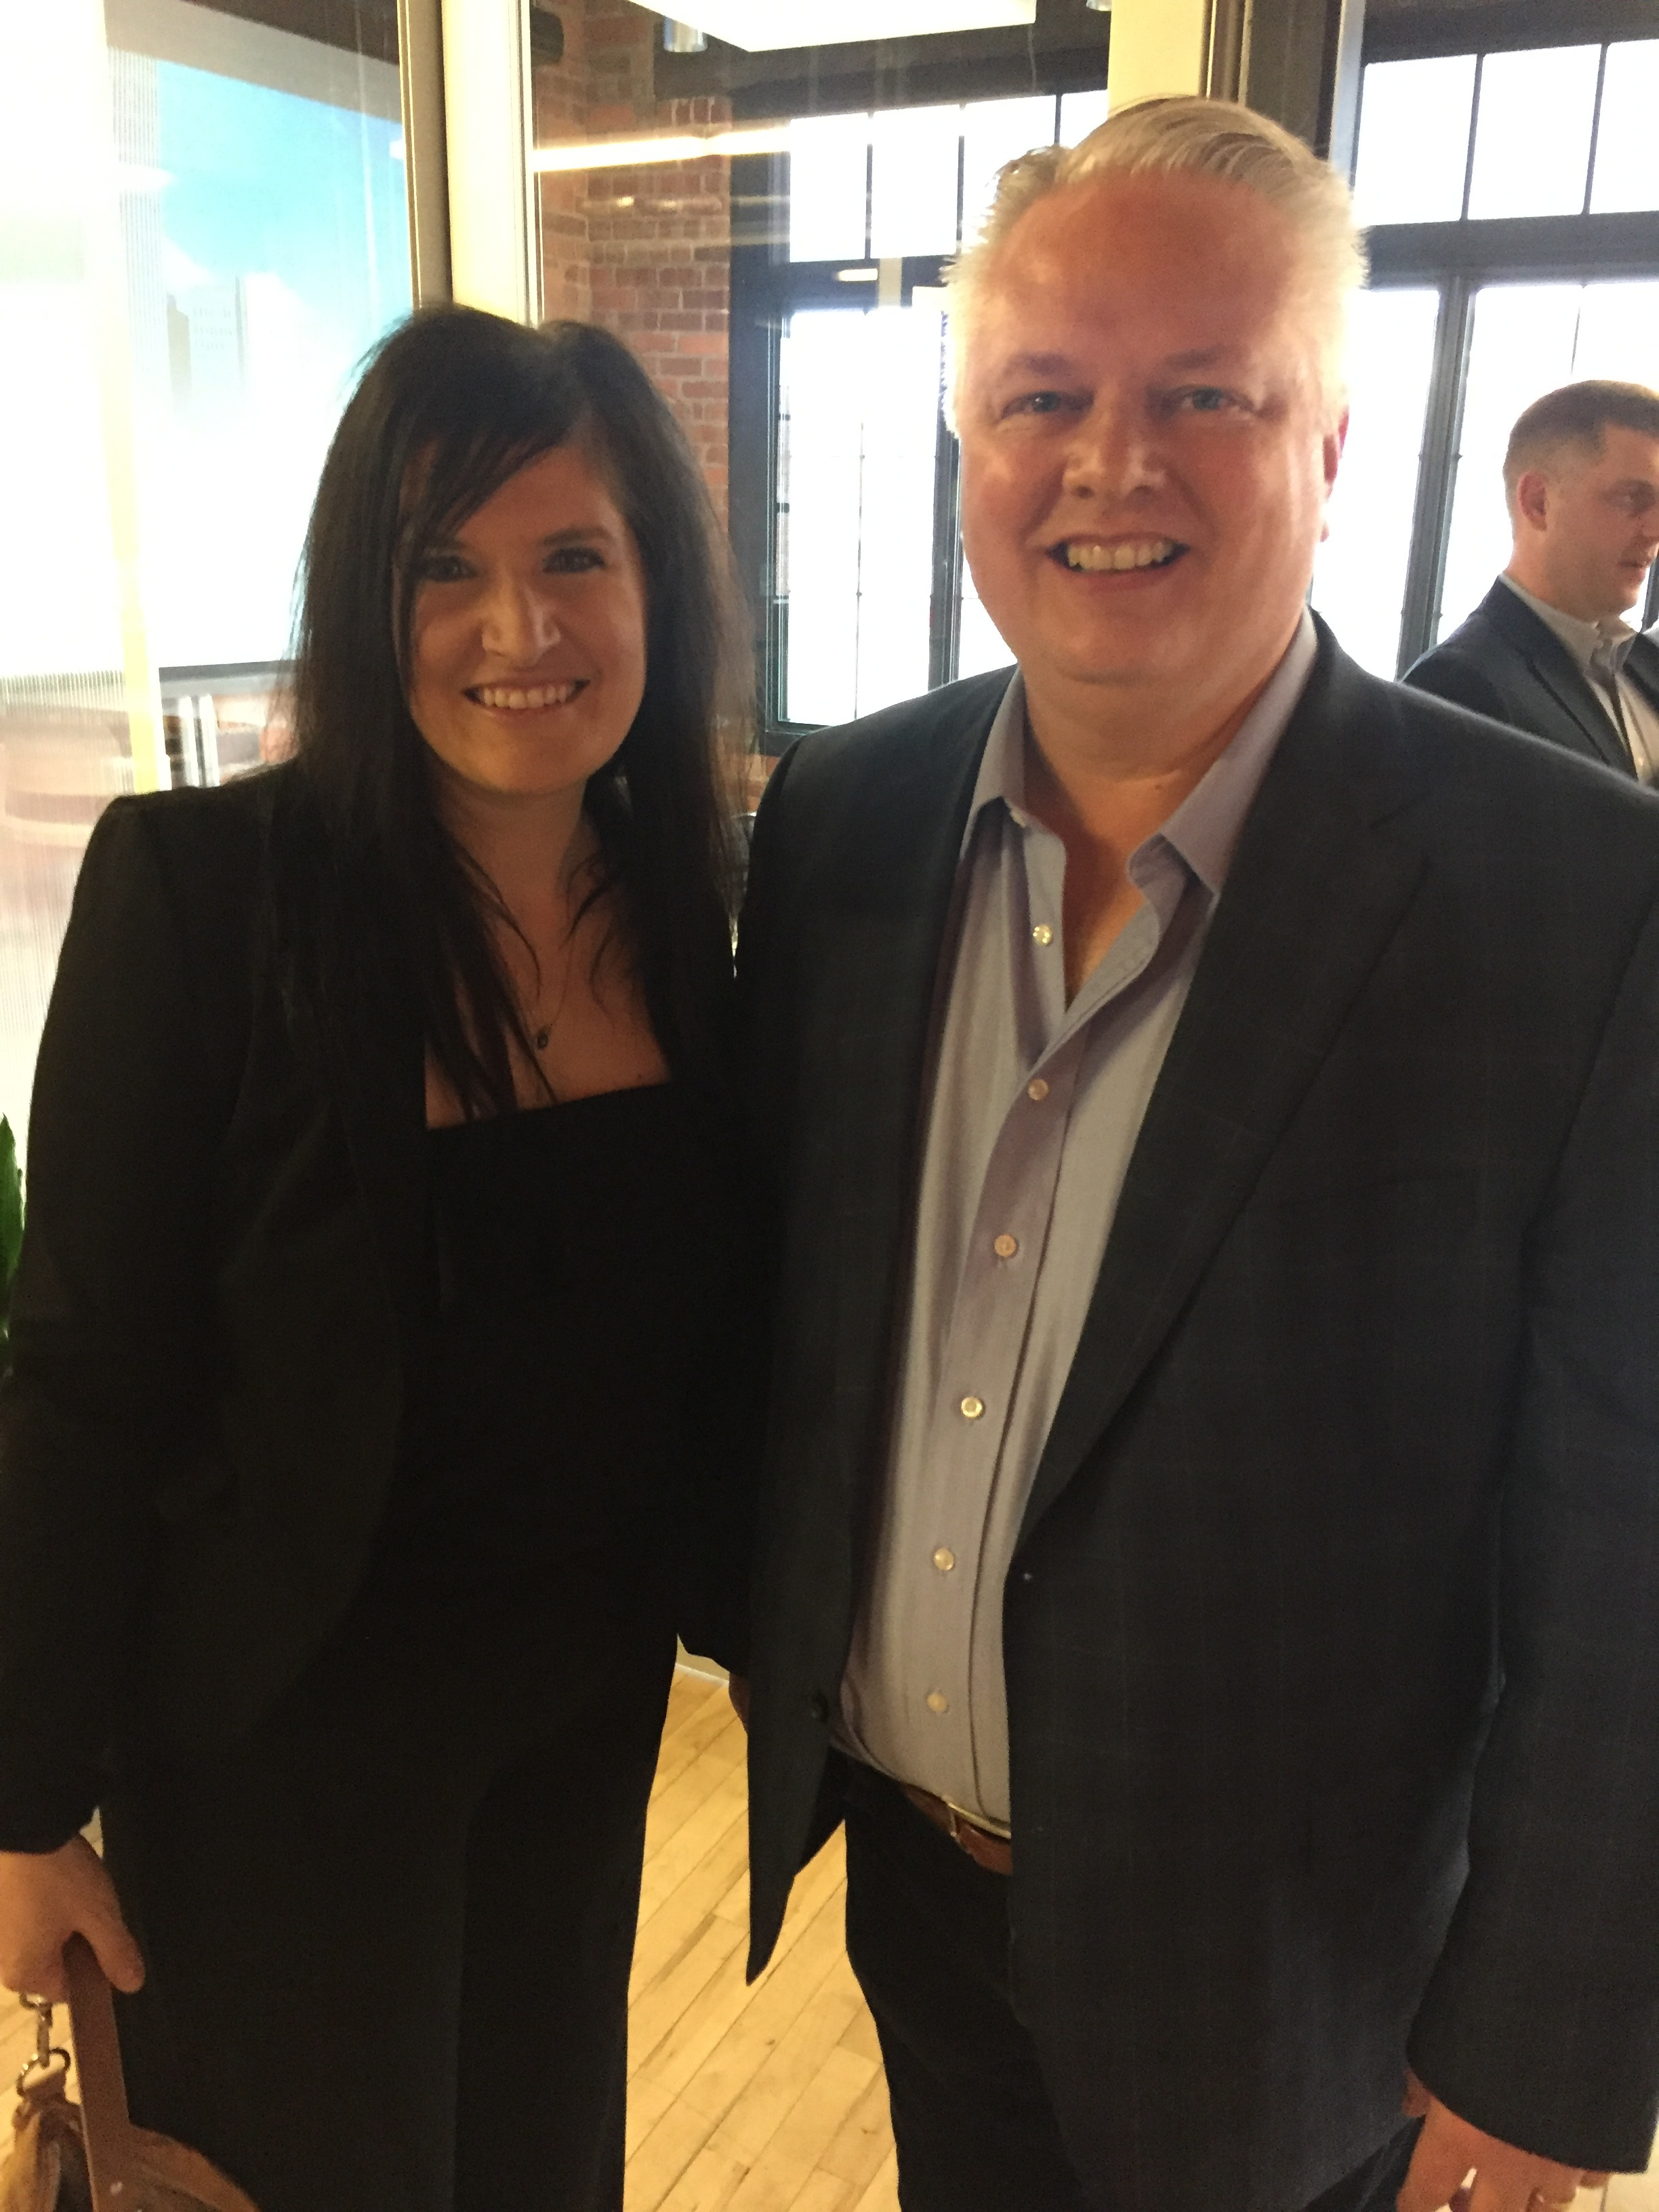 Rural Revival founder Danna Larson with Linc Kroeger of Pillar Technology at The Forge's event celebrating their company's expansion to Jefferson, Iowa